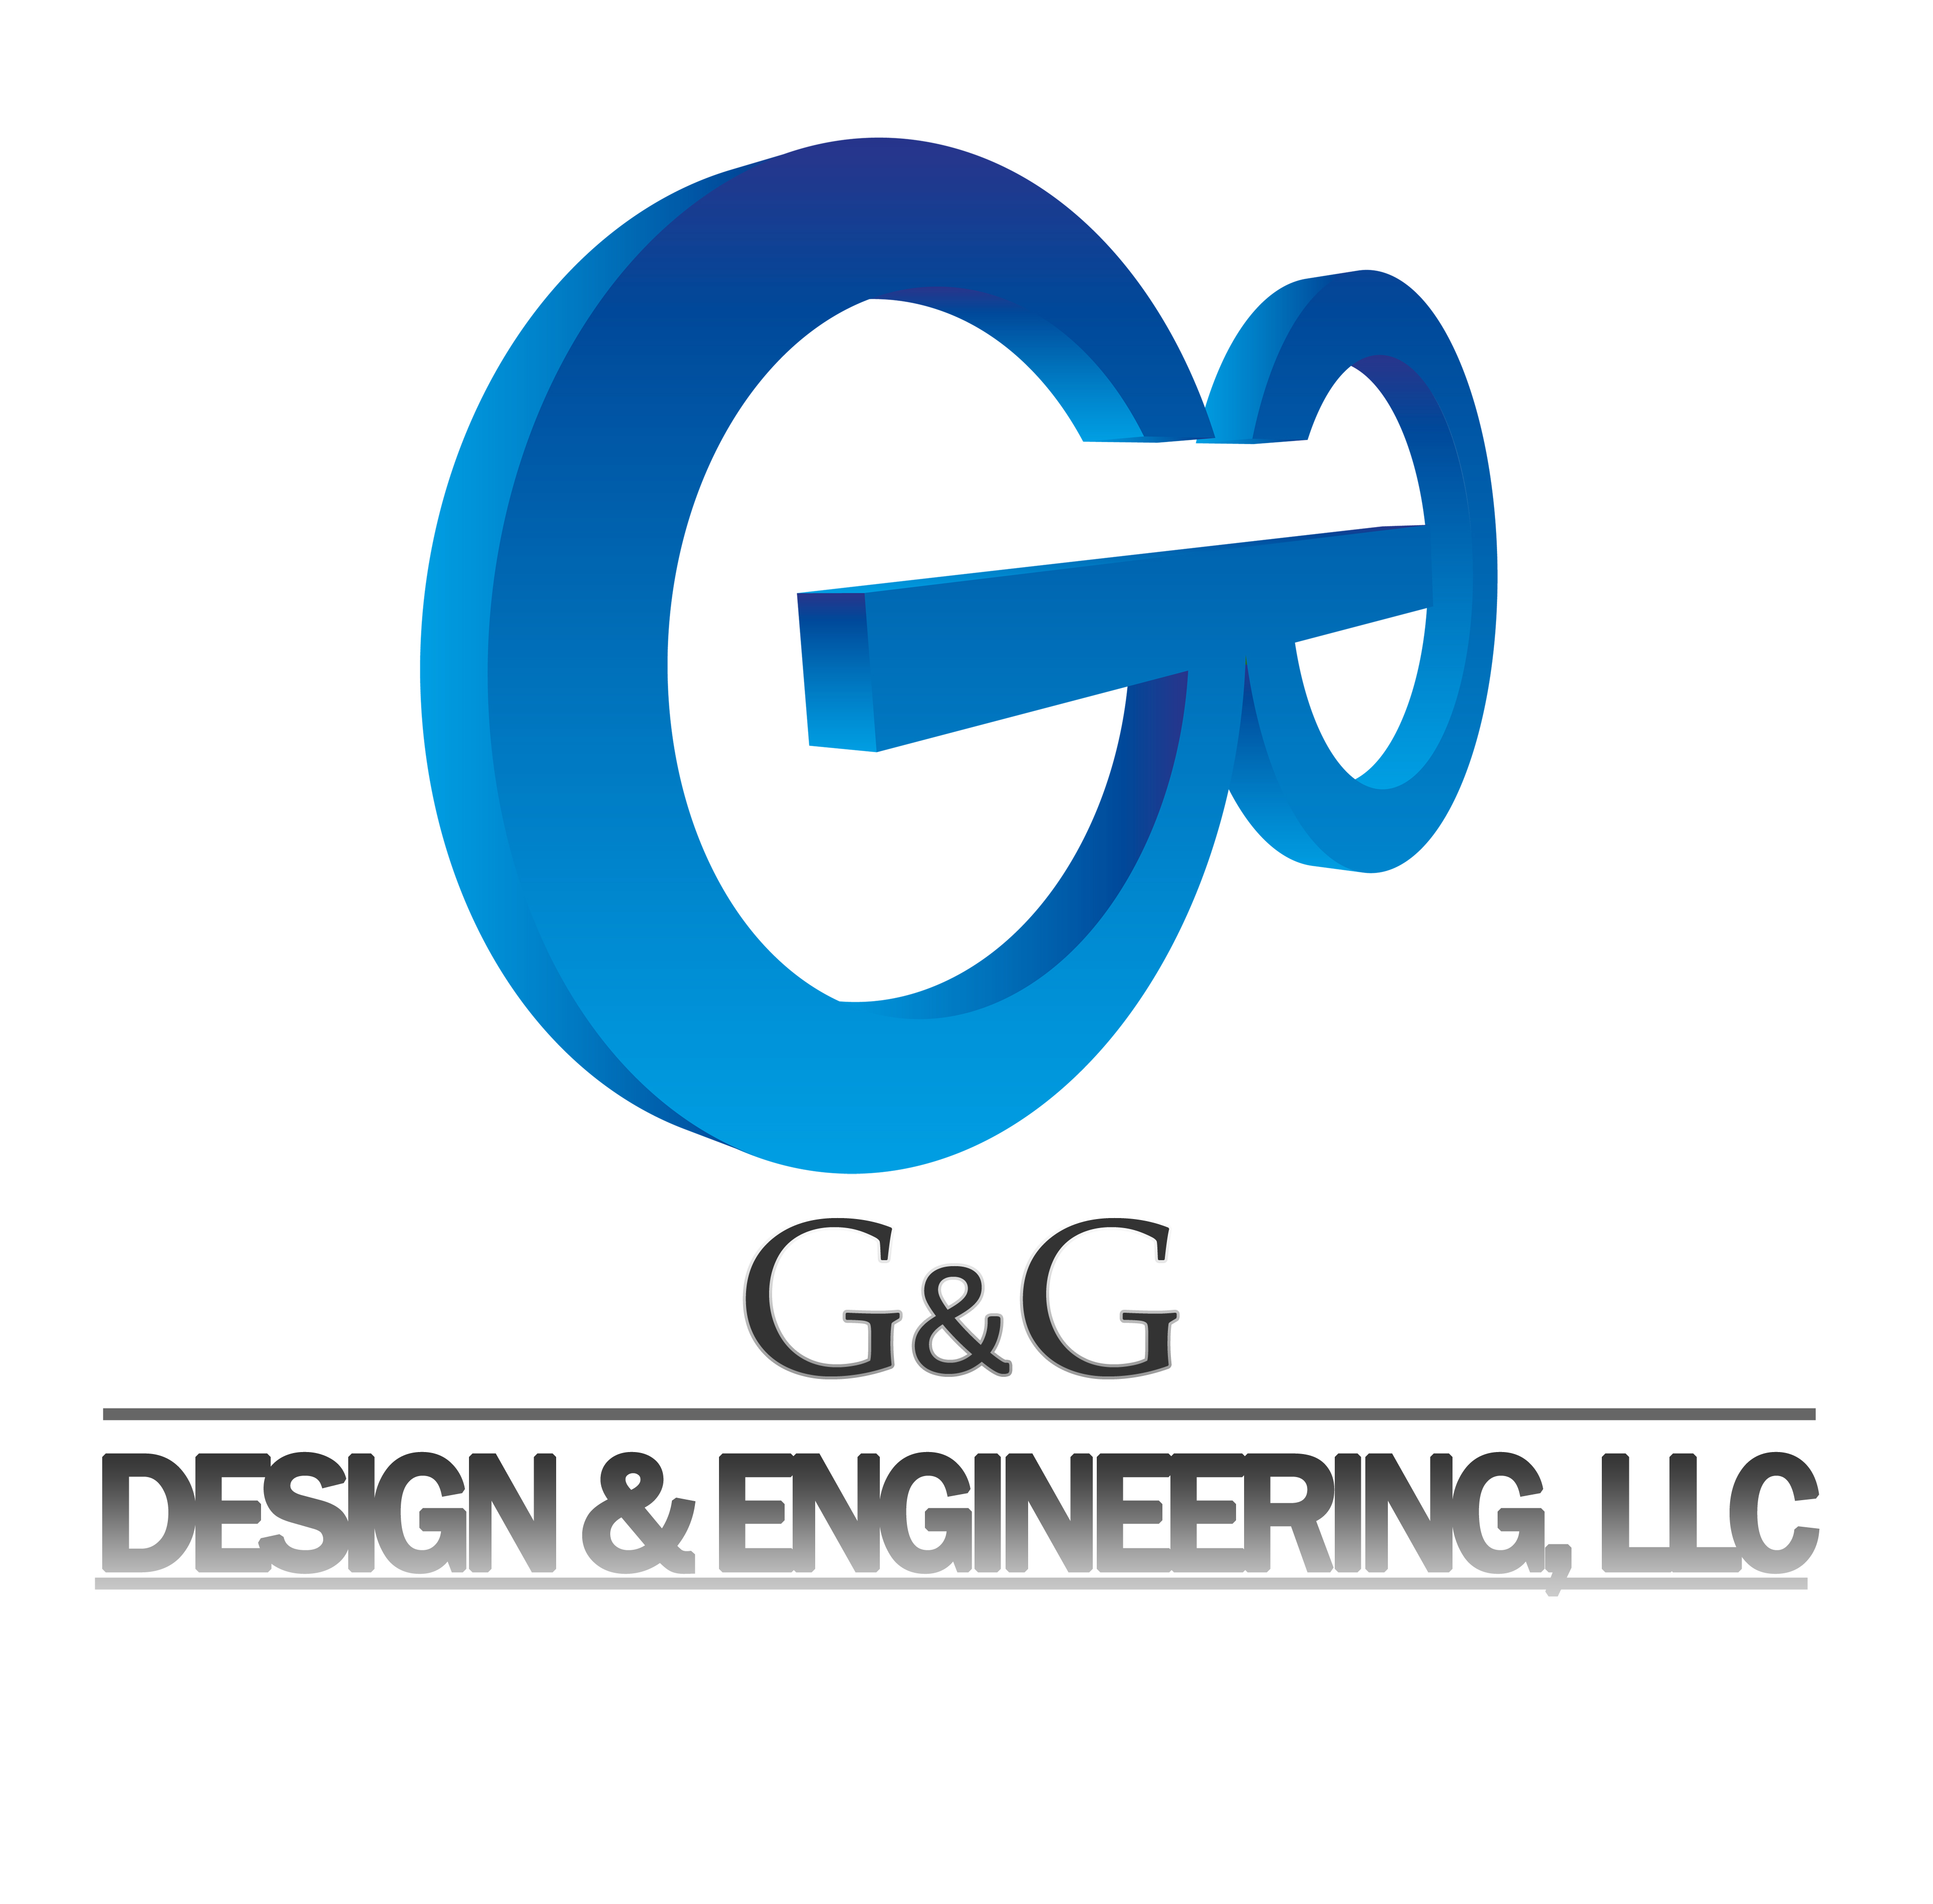 Logo Design by Ervin Beñez - Entry No. 91 in the Logo Design Contest Creative Logo Design for G&G Design and Engineering, LLC.